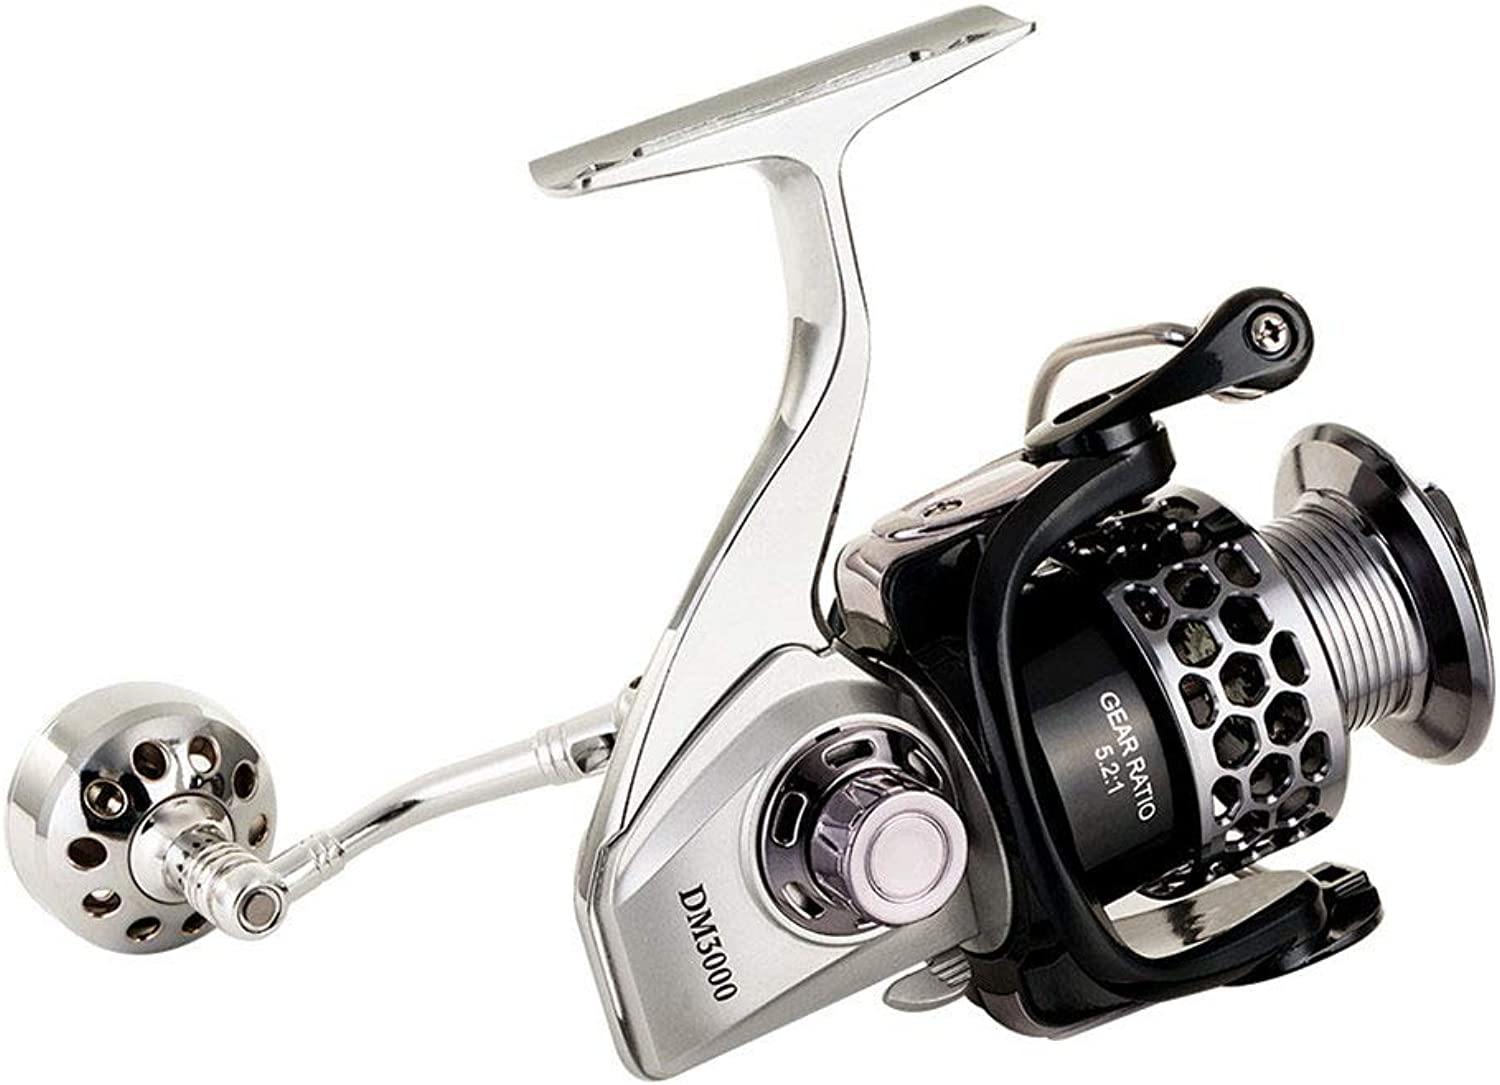 5.2 1 14BB Waterproof Carbon Drag Spinning Fishing Reel, Large Spool 20KG Max Drag Freshwater Pesca Spinning Fishing Reel Saltwater